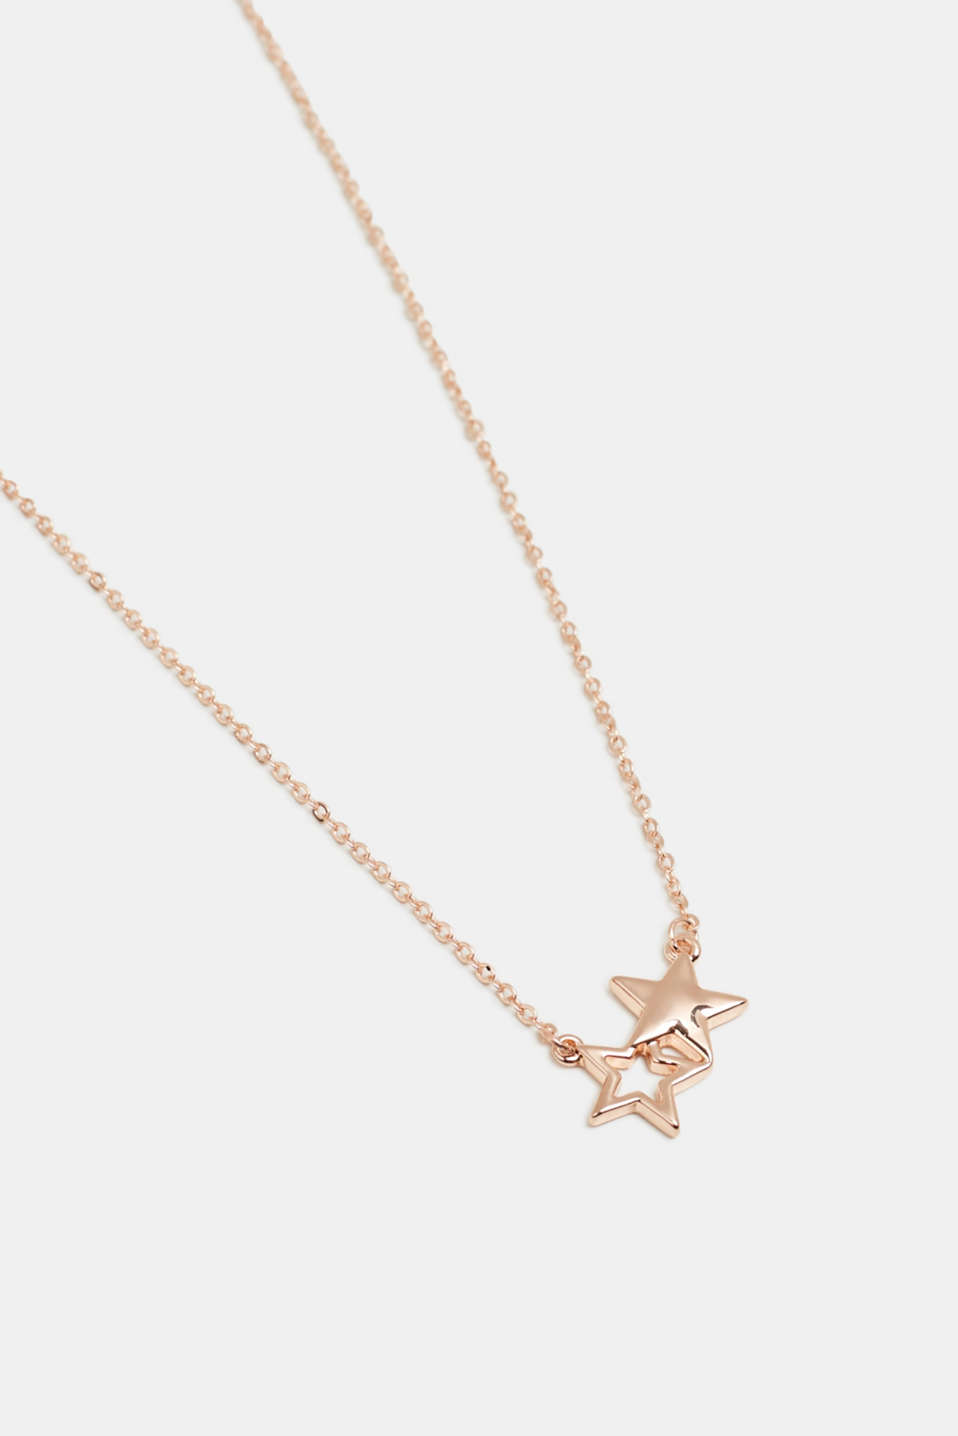 Metal necklace with a star pendant, ROSEGOLD, detail image number 1